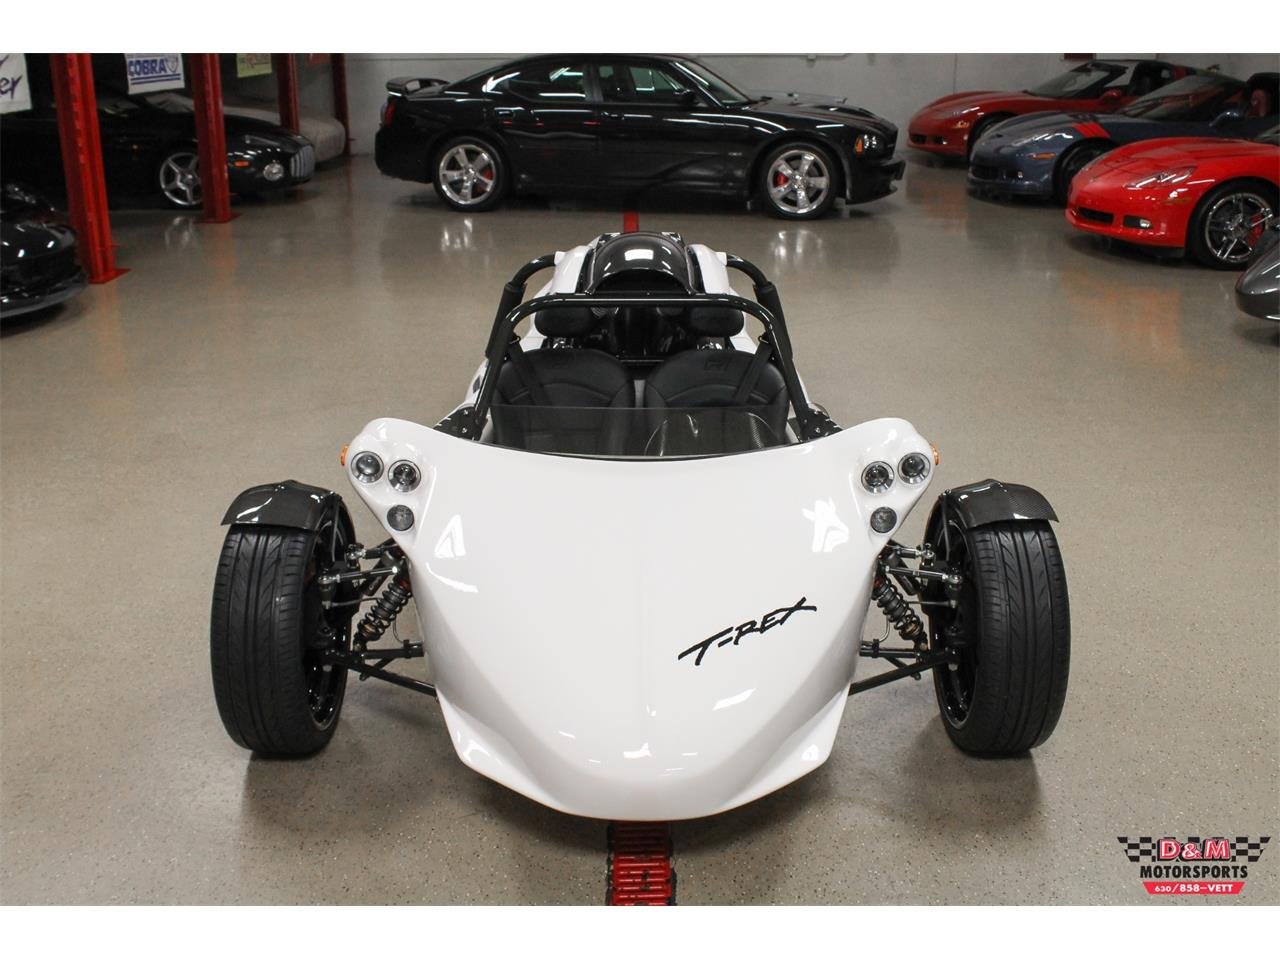 Large Picture of '18 Campagna T-Rex located in Glen Ellyn Illinois Offered by D & M Motorsports - PCCJ